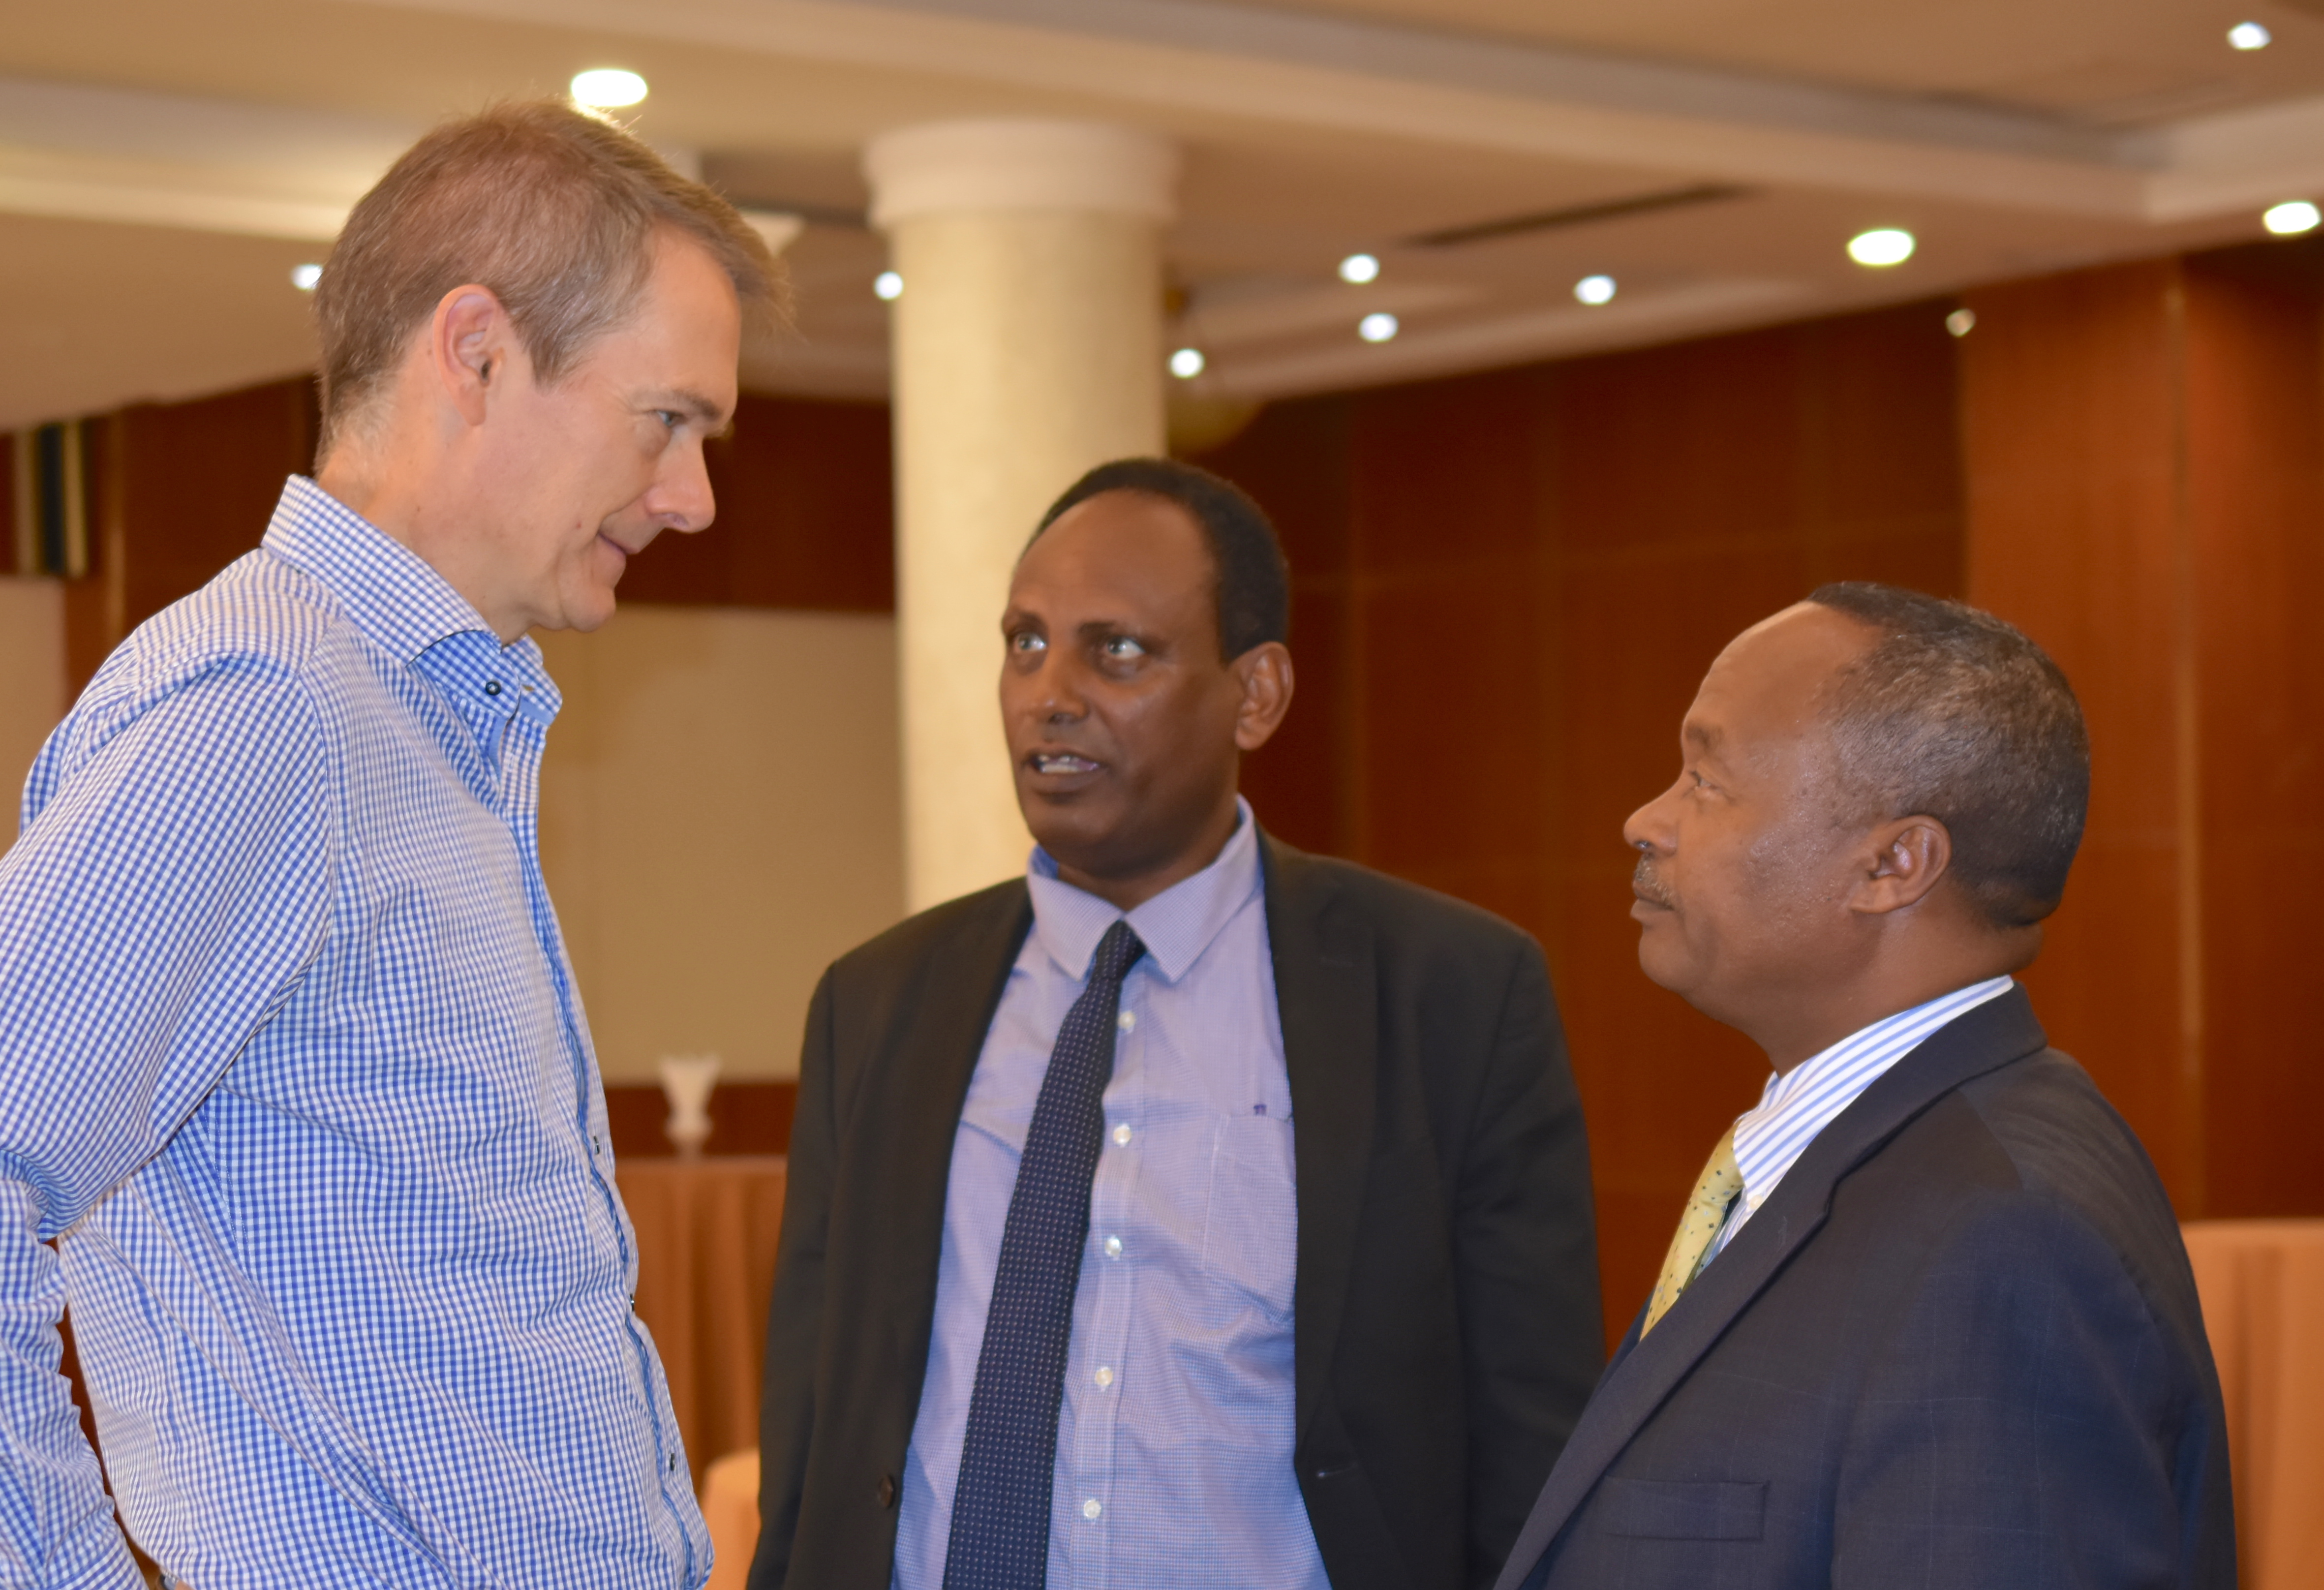 CIMMYT's Socioeconomics Program Director, Olaf Erenstein (left), talks to Eyasu Abraha, Minister of Agriculture and Natural Resources (center), and Mandefro Nigussie, Director General of the Ethiopian Institute of Agricultural Research.